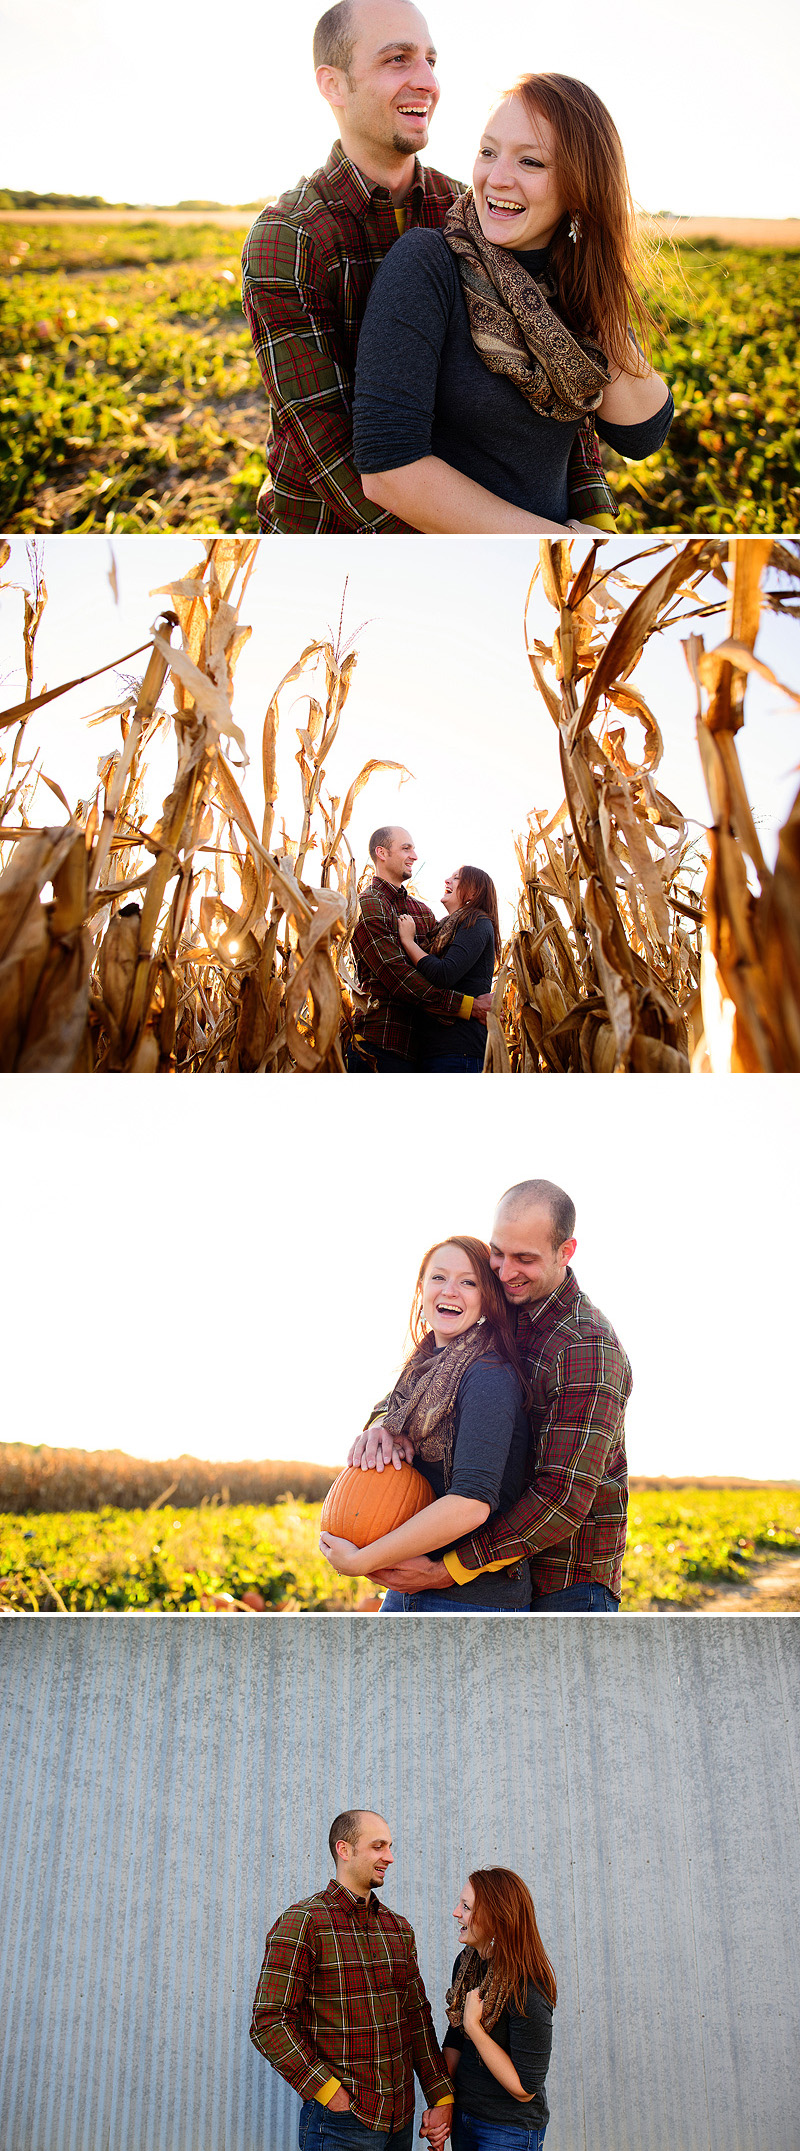 Fun fall engagement pictures at a pumpkin patch in Lawrence, Kansas.